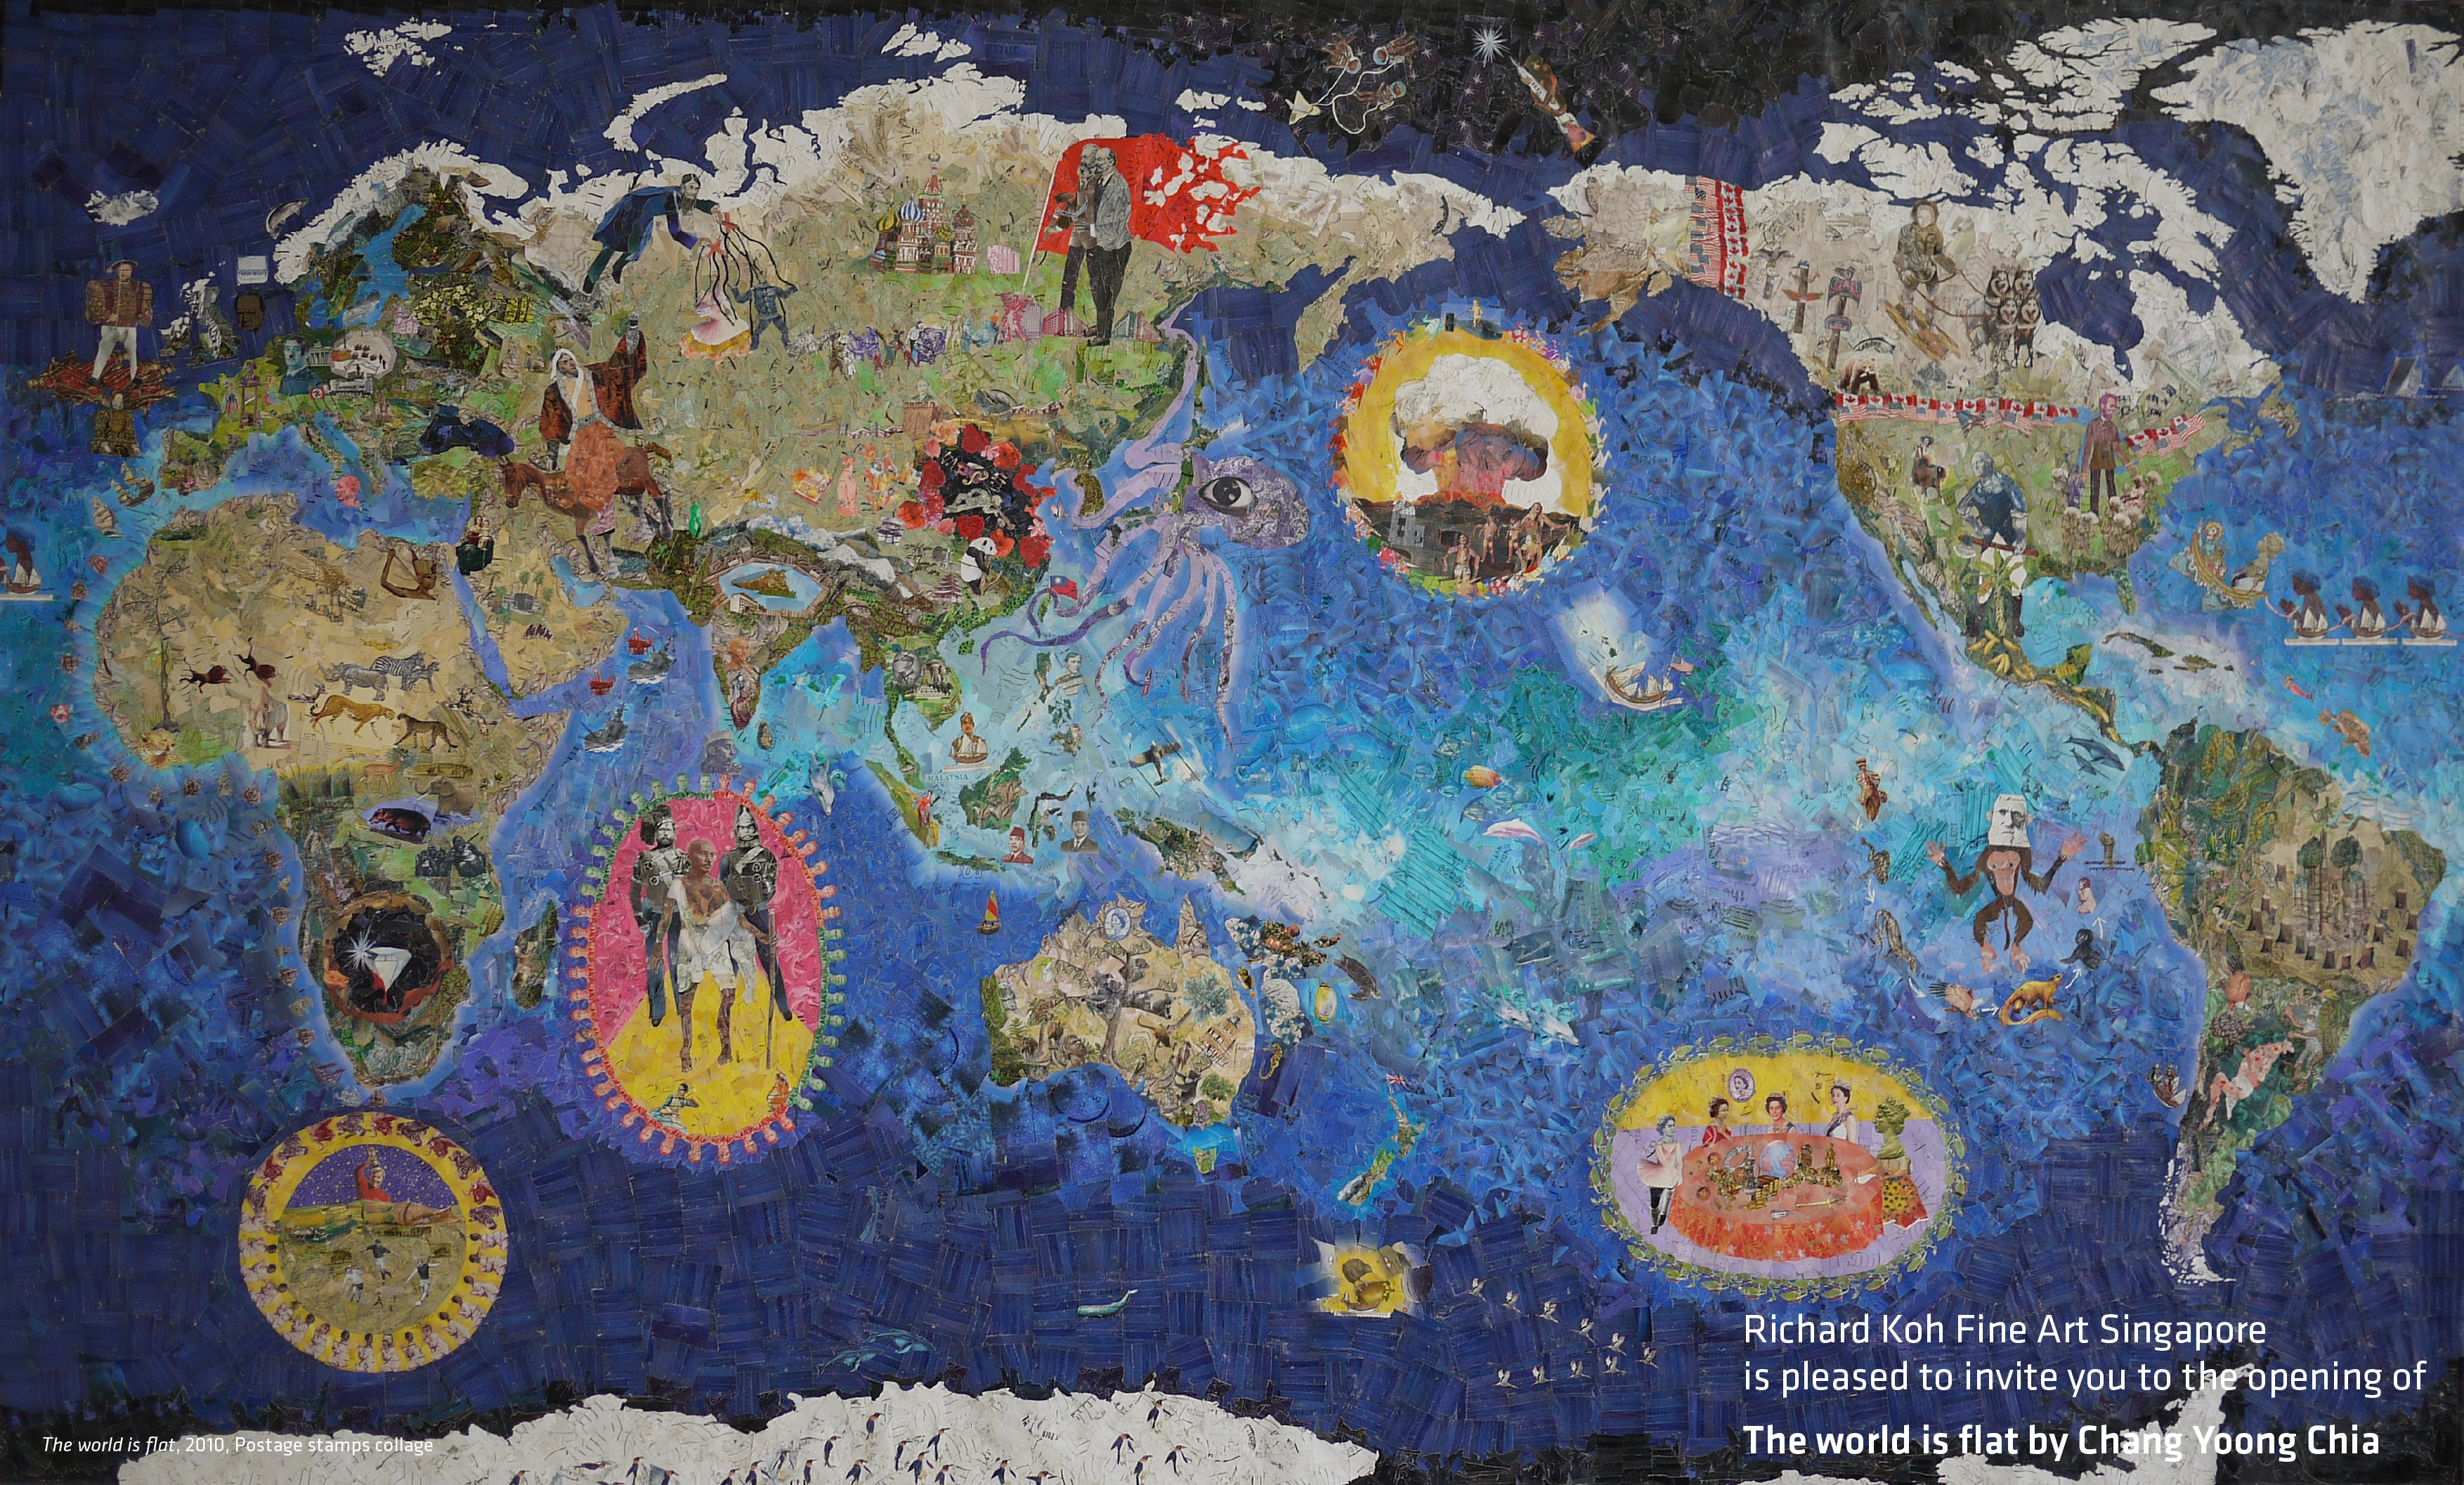 The world is flat richard koh fine art singapore artinasia the world is flat gumiabroncs Choice Image